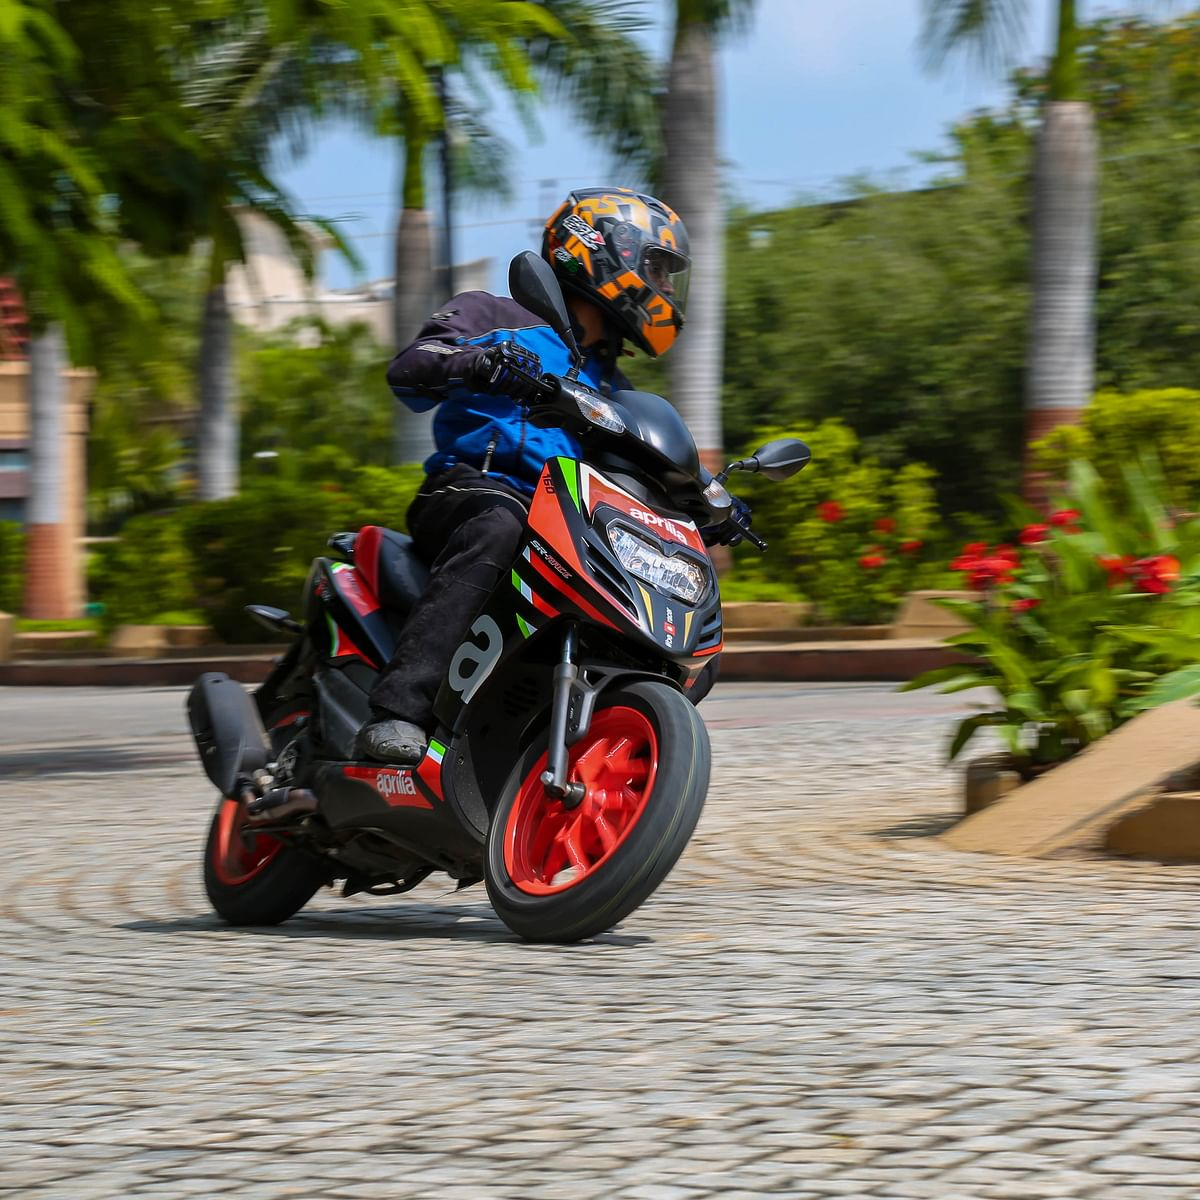 Aprilia SR 160 and SR 160 Race review